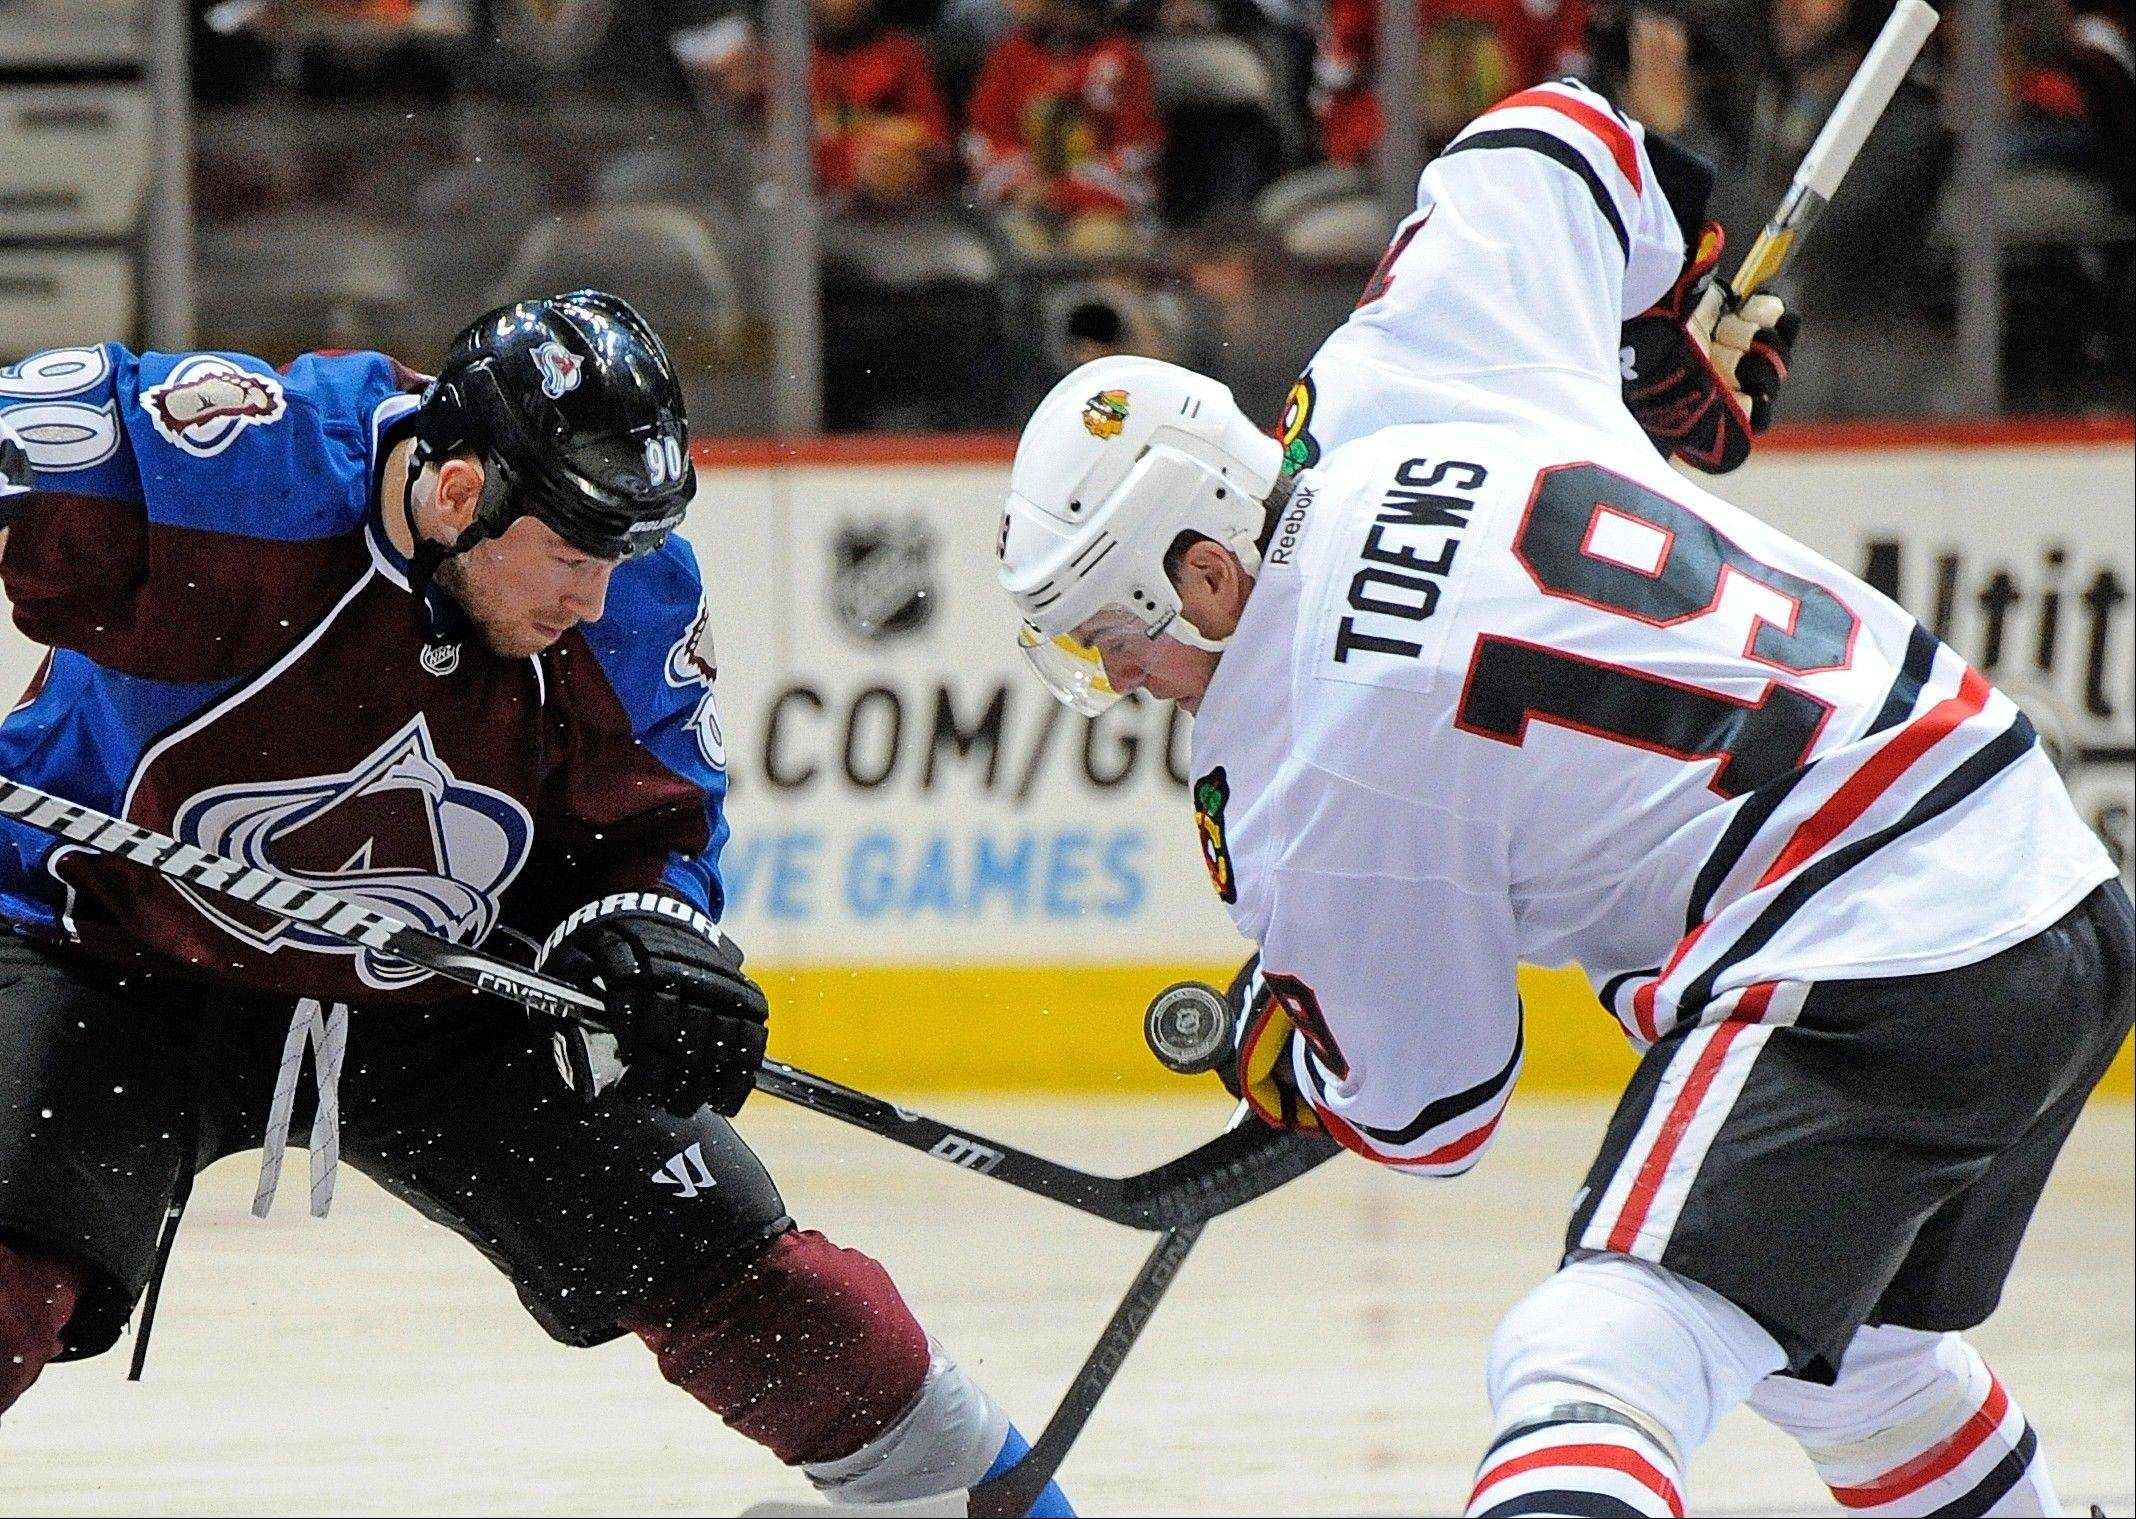 Colorado Avalanche center Ryan O'Reilly (90) and Chicago Blackhawks center Jonathan Toews (19) fight for the puck during the first period.